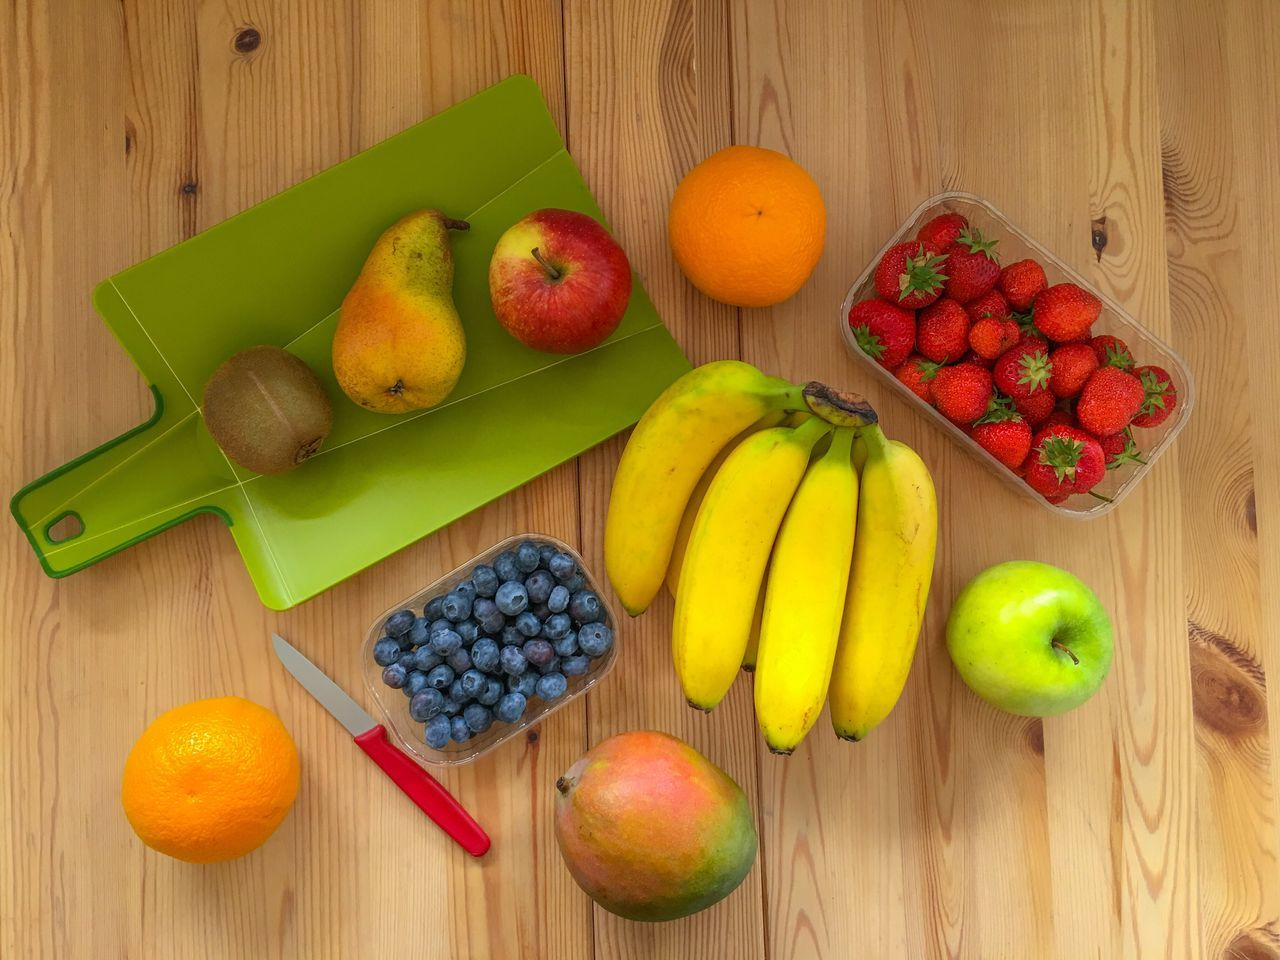 Fruity day 😋😋😋 Fruit Banana Healthy Eating Freshness Food Apple - Fruit Food And Drink Variation Choice Table High Angle View Pear Raspberry Grape Peach Basket Directly Above Indoors  No People Healthy Lifestyle Eyeem Market